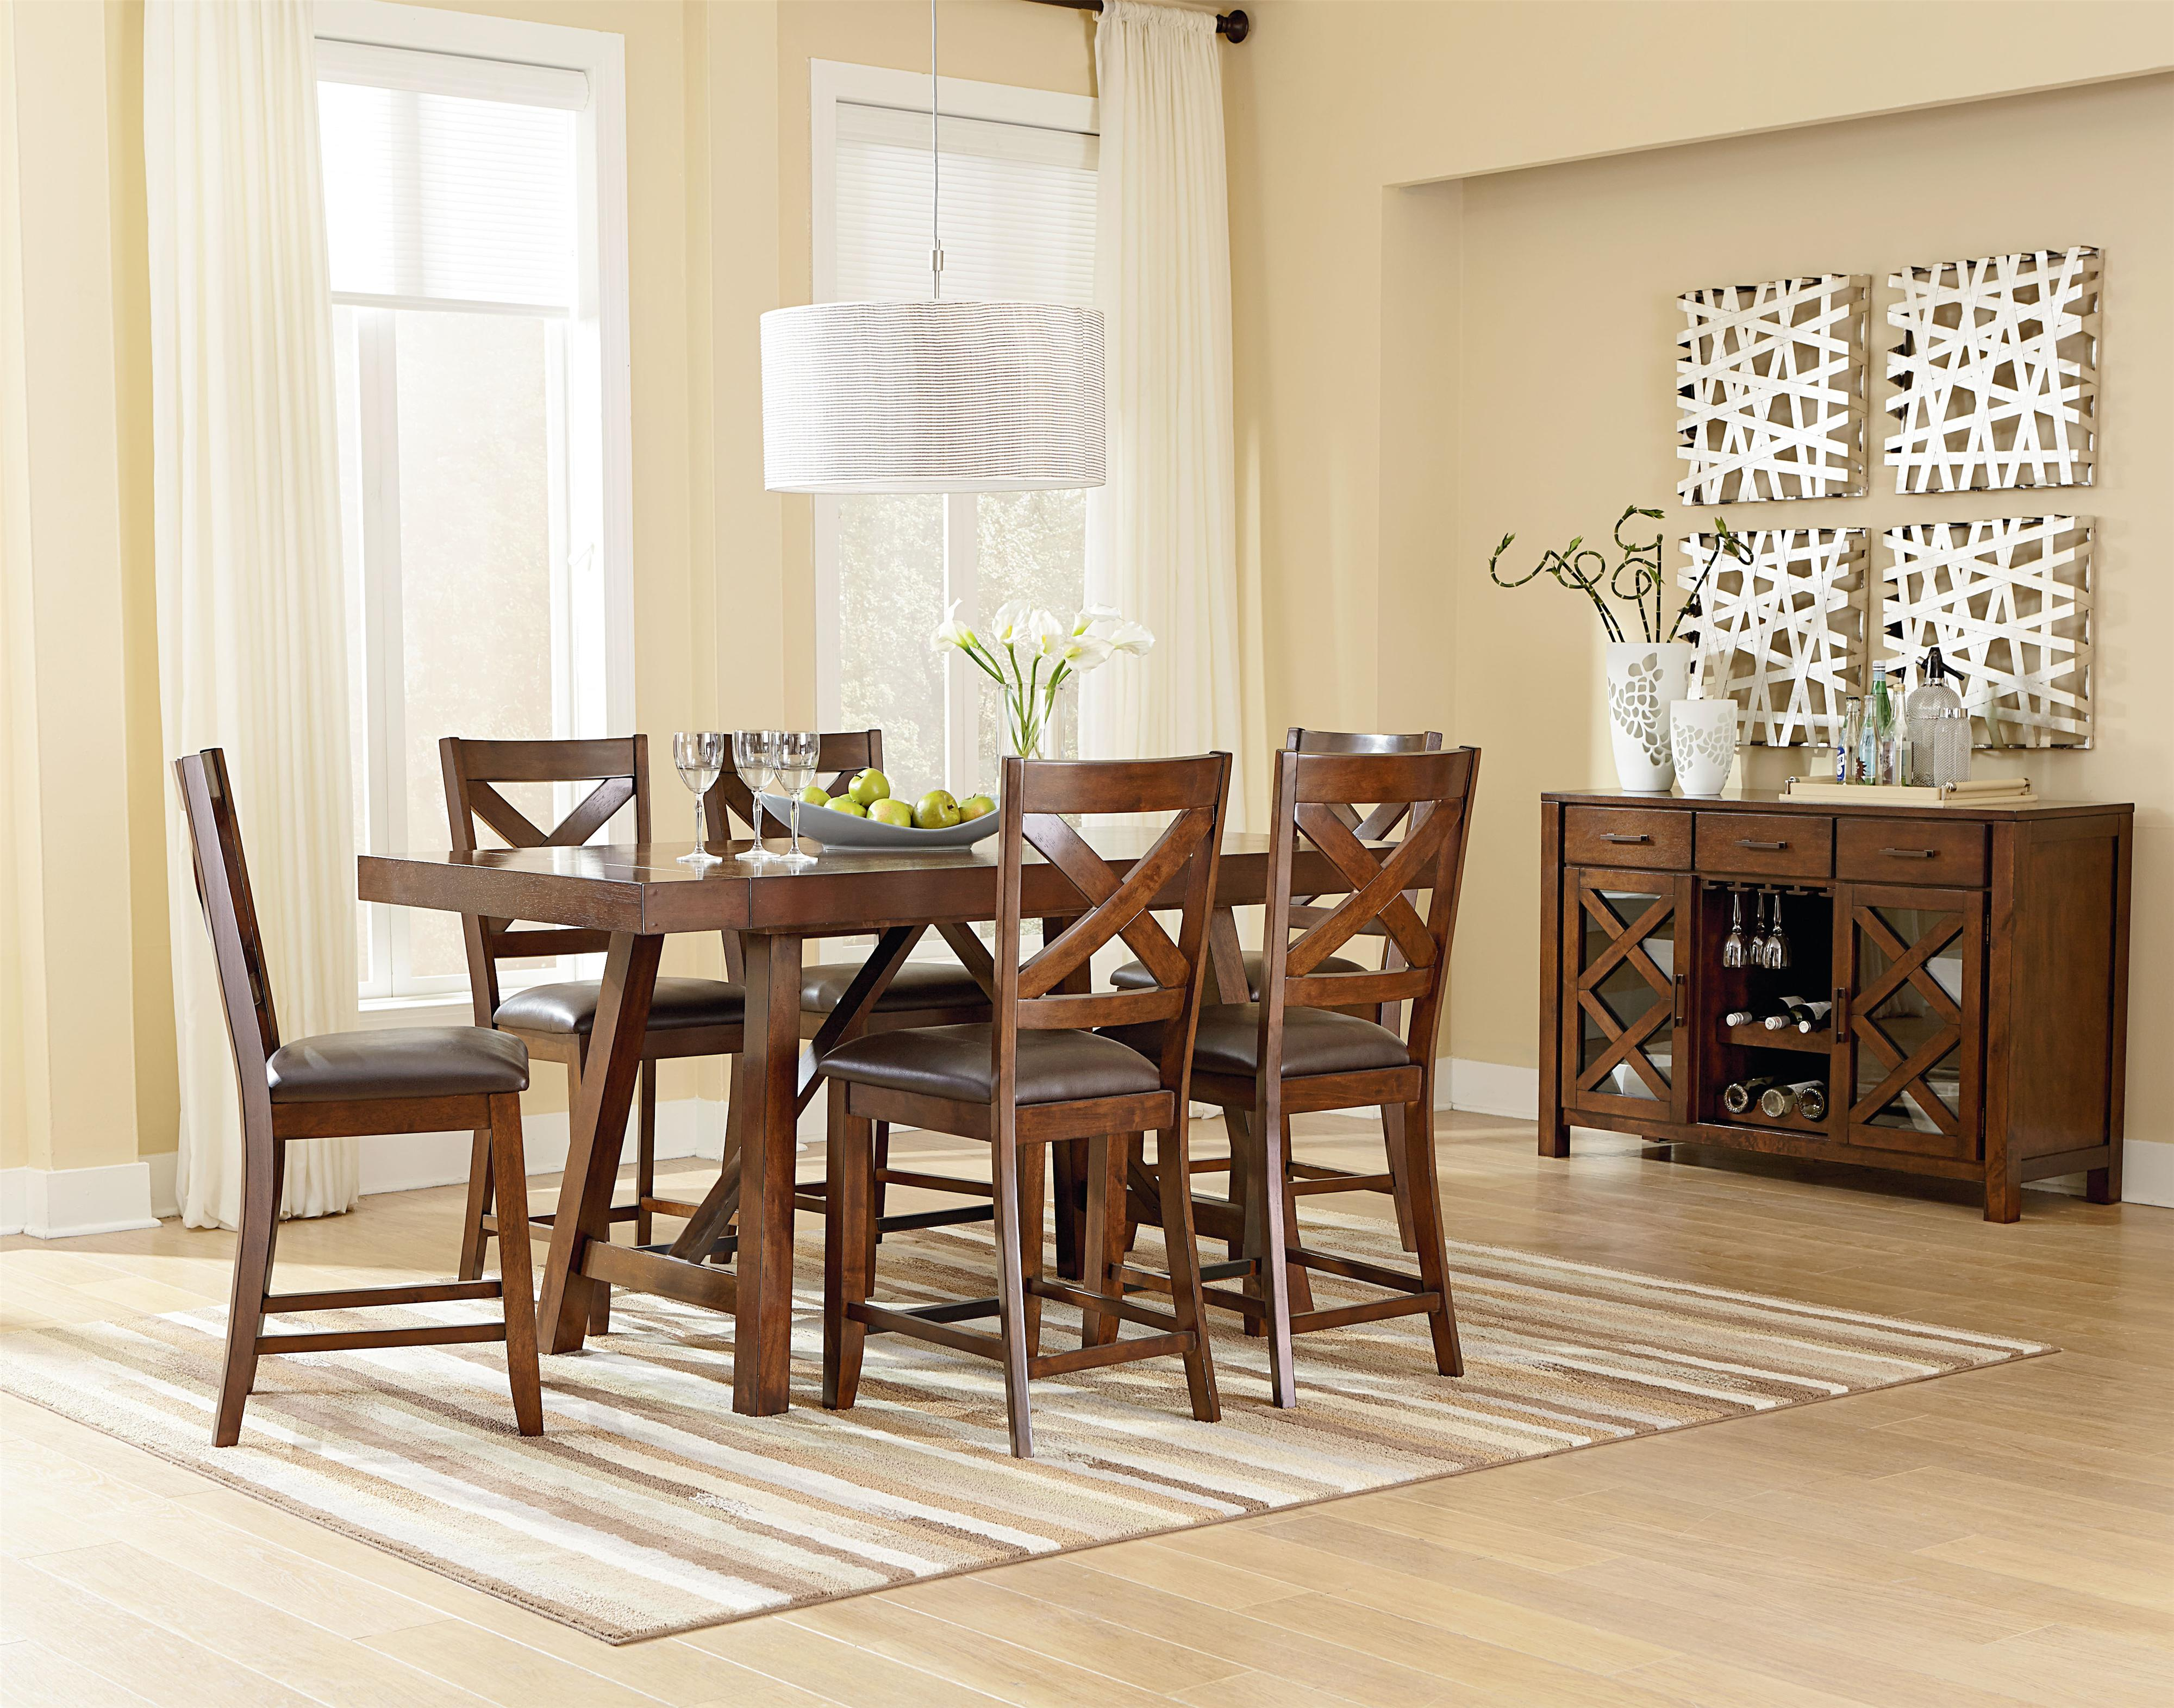 Standard furniture omaha brown casual dining room group for Casual dining room